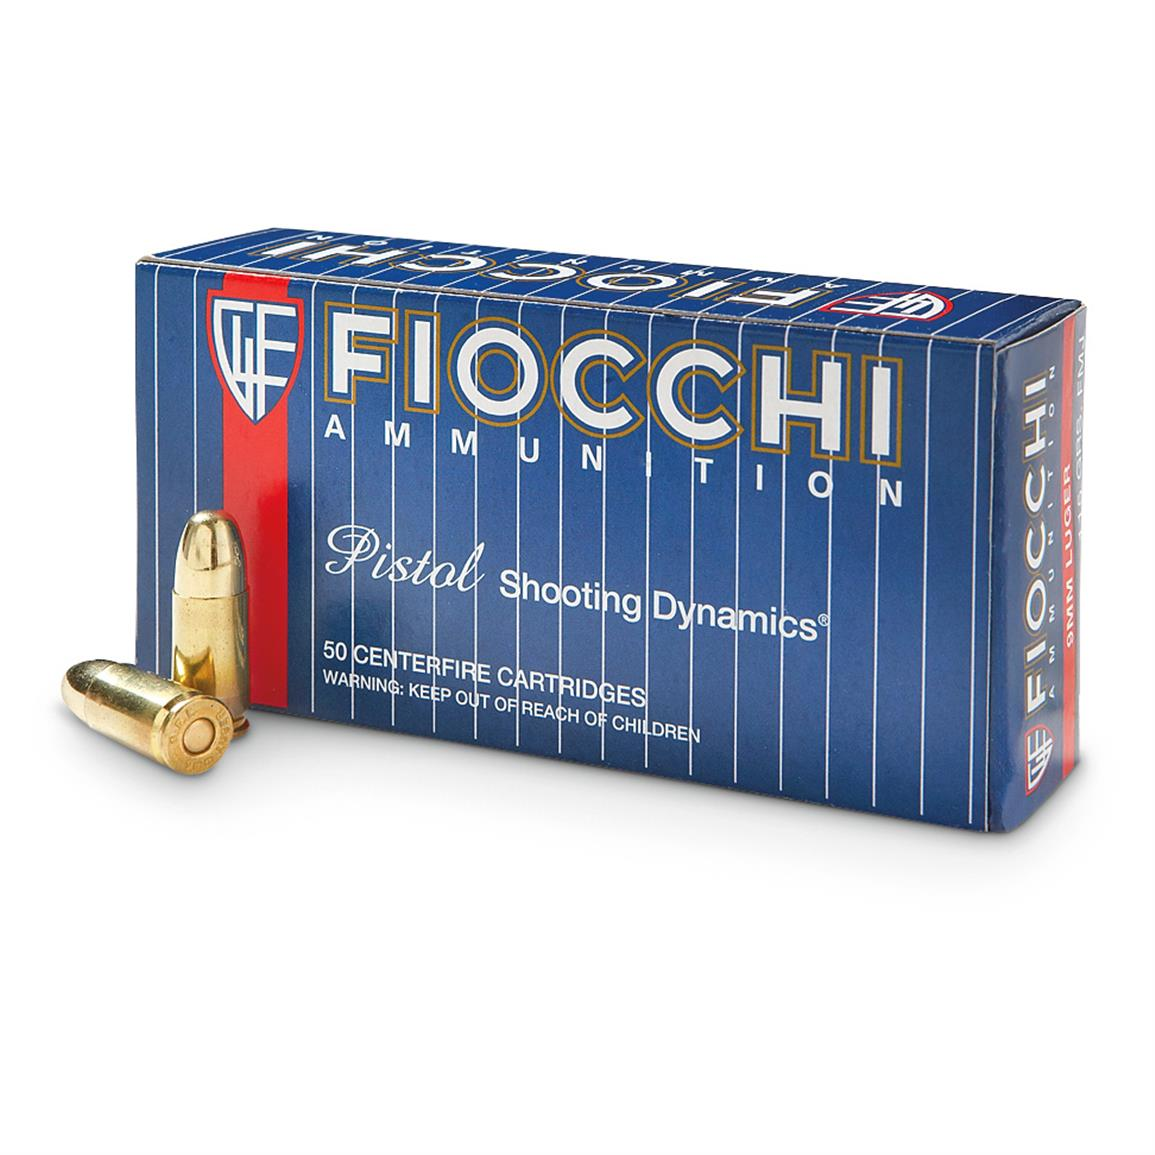 Fiocchi, 9mm Luger, FMJ, 115 Grain, 50 Rounds